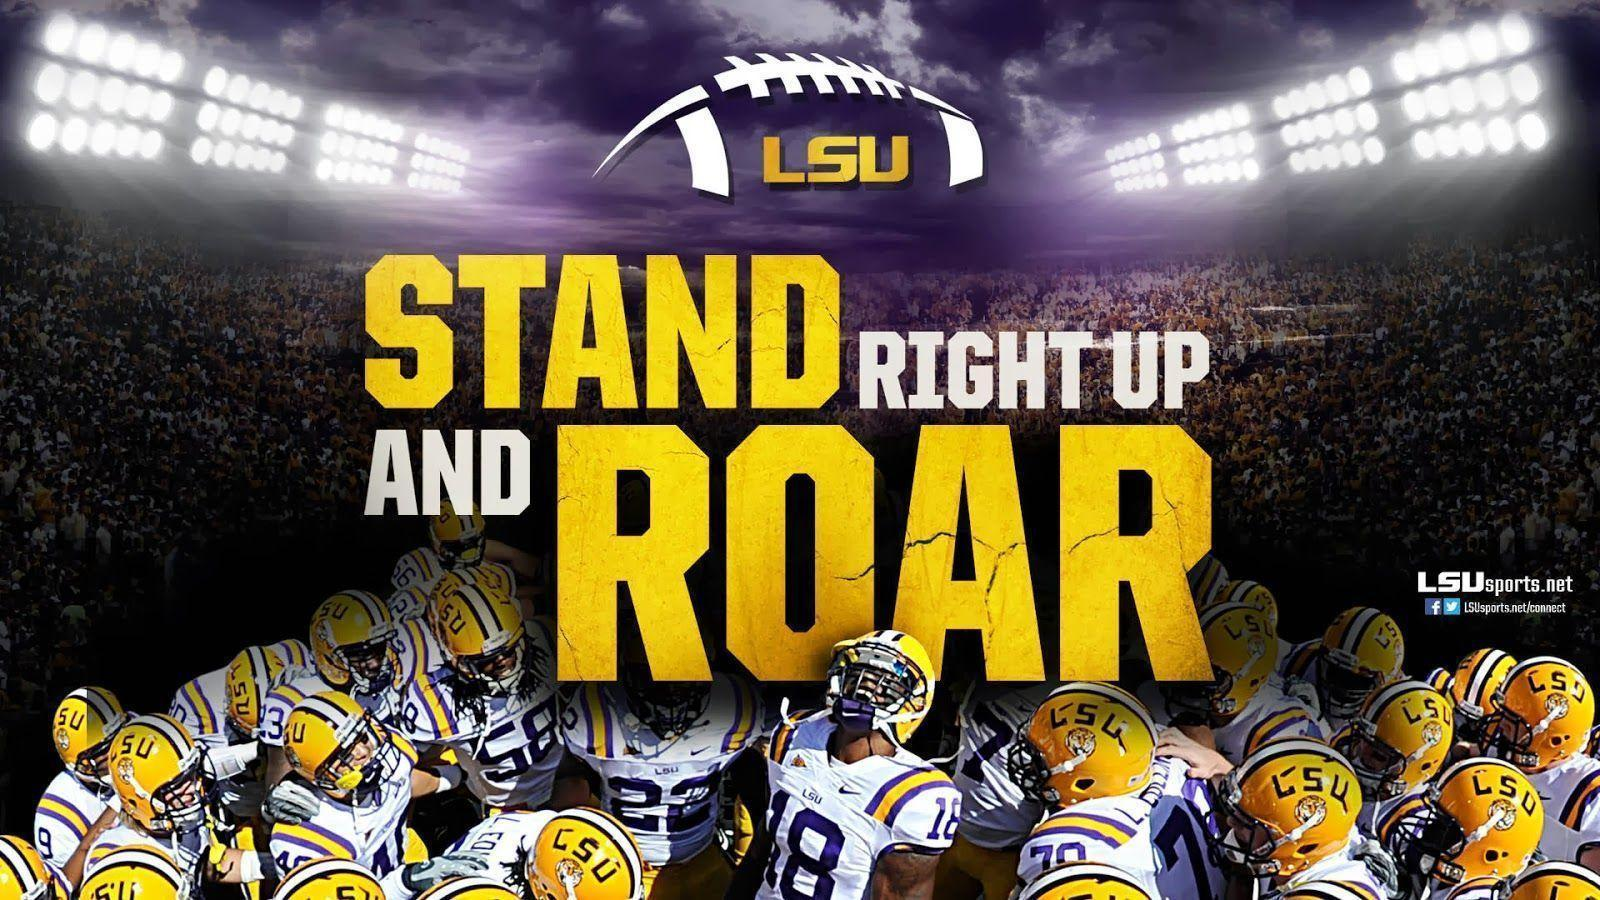 lsu tigers football wallpapers 2015 wallpaper cave